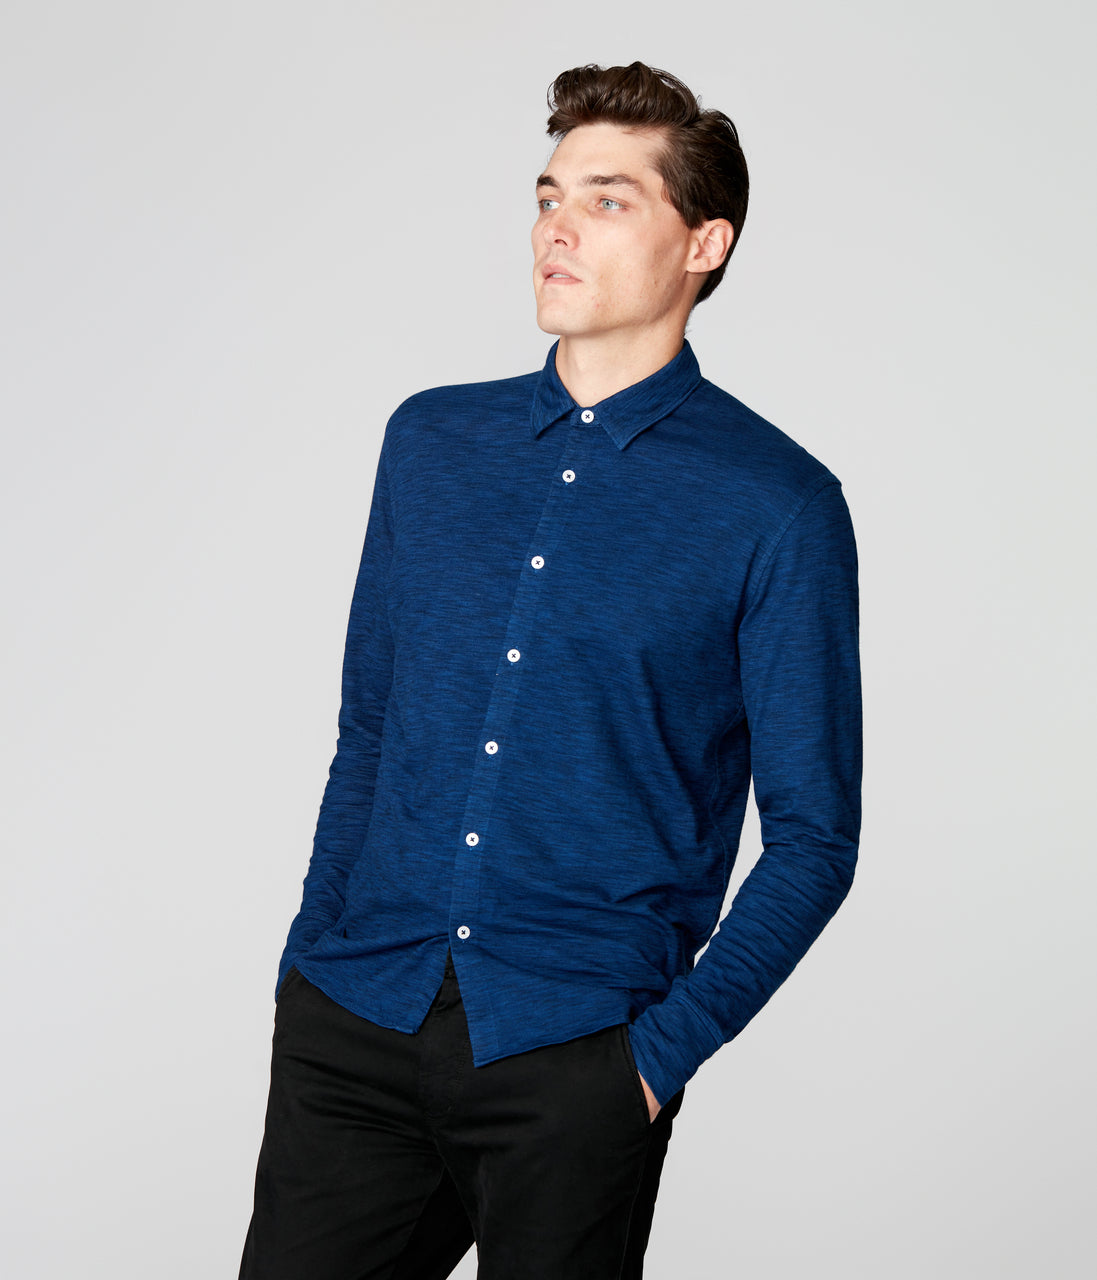 On-Point Soft Shirt in Black Marl Soft Slub - Blue - Good Man Brand - On-Point Soft Shirt in Black Marl Soft Slub - Blue